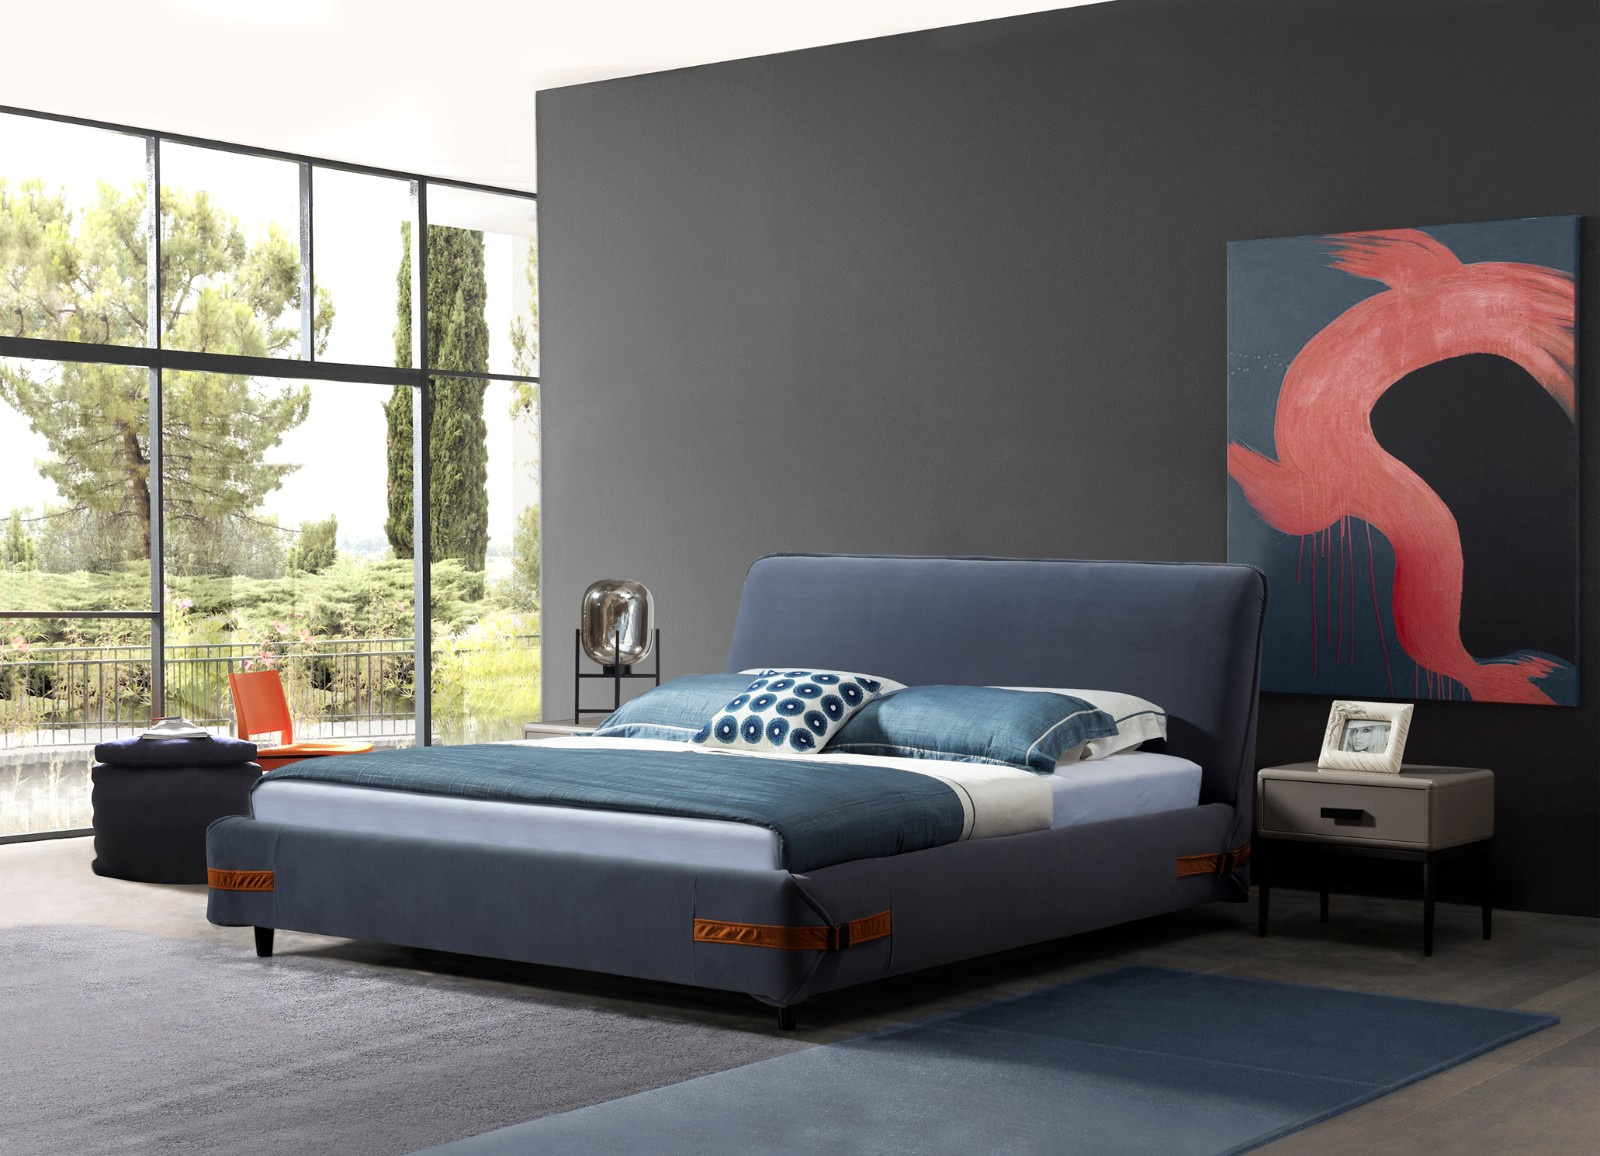 news-Giving Your Bedroom Some light and Embellishment Benefits You Both Physically and Mentally-GOJ